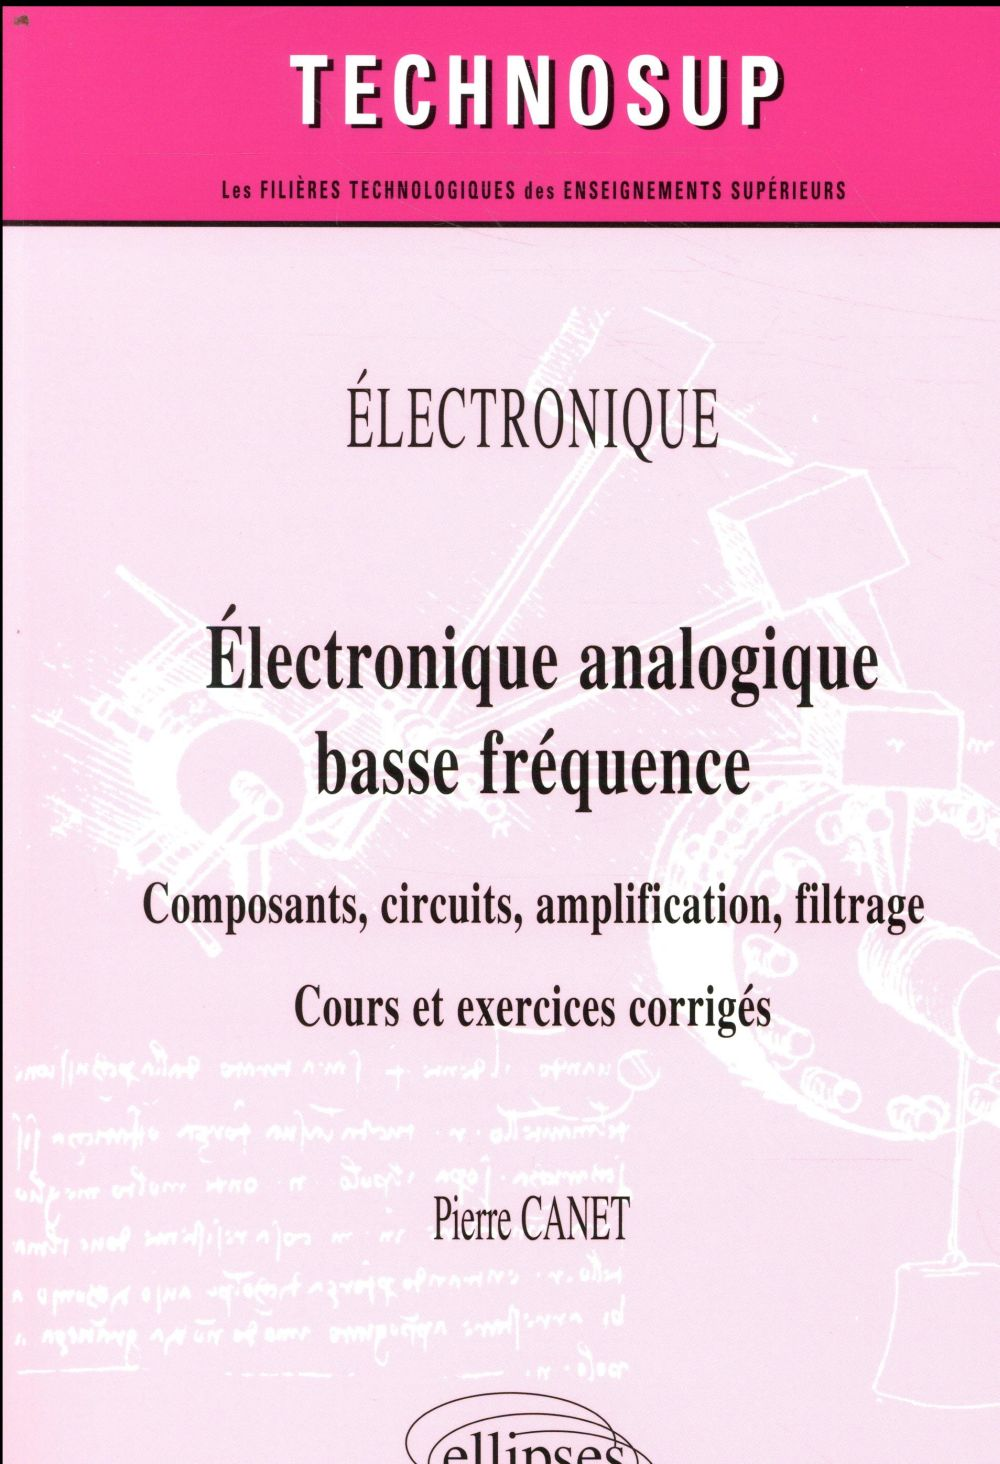 ELECTRONIQUE ANALOGIQUE BASSE FREQUENCE COMPOSANTS CIRCUITS AMPLIFICATION FILTRAGE COURS EXERCICES